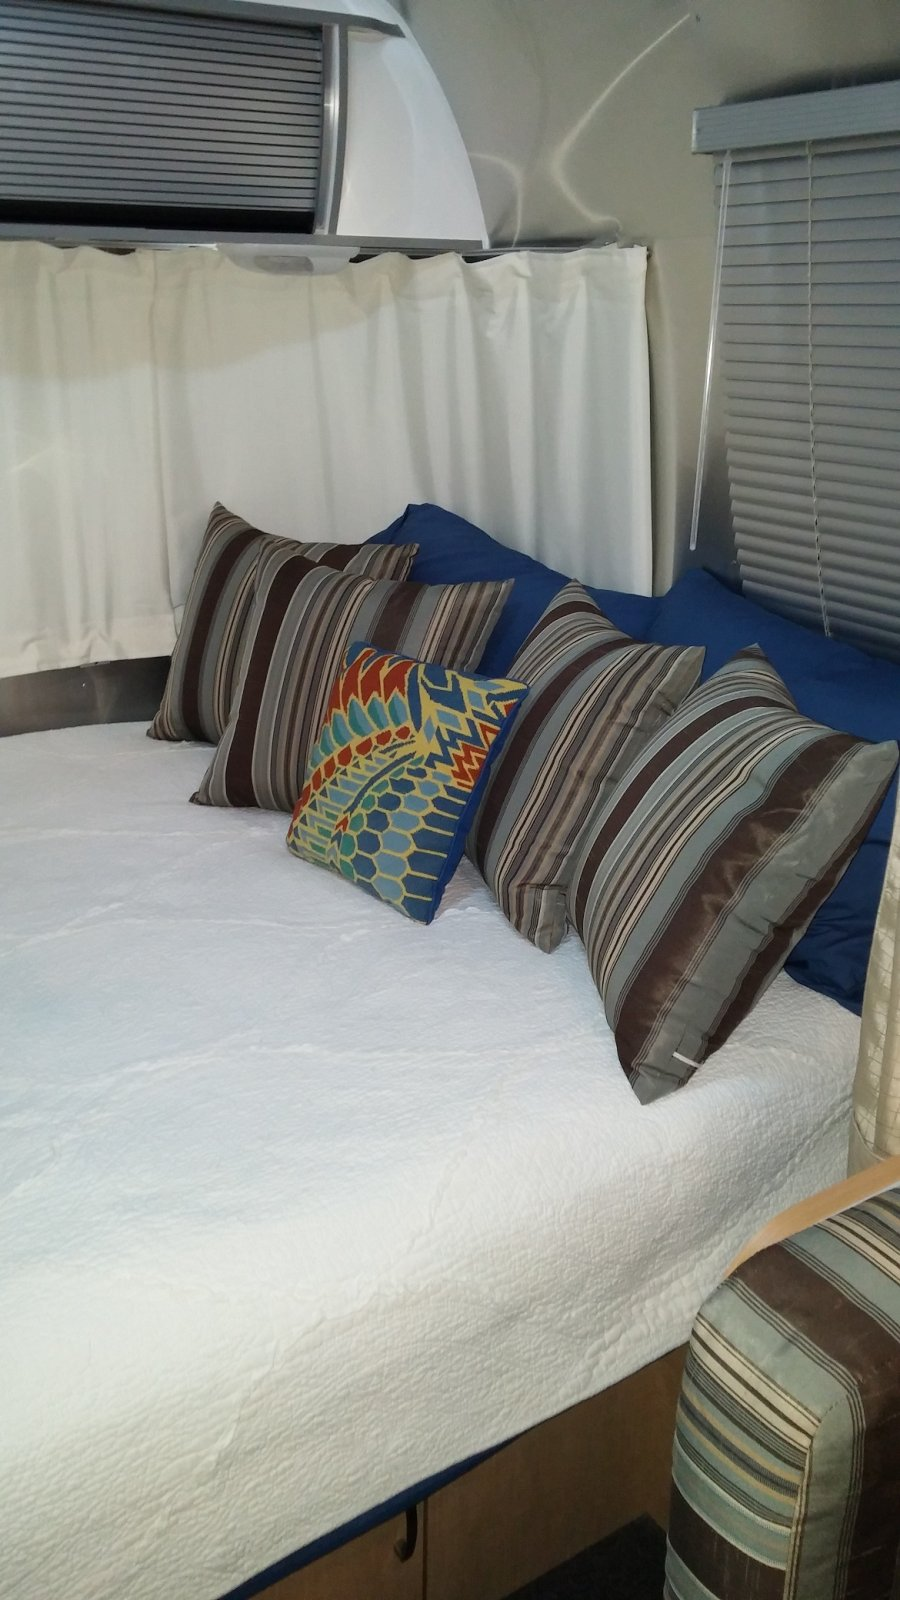 Click image for larger version  Name:Airstream Pillow 2.jpg Views:94 Size:206.7 KB ID:229381